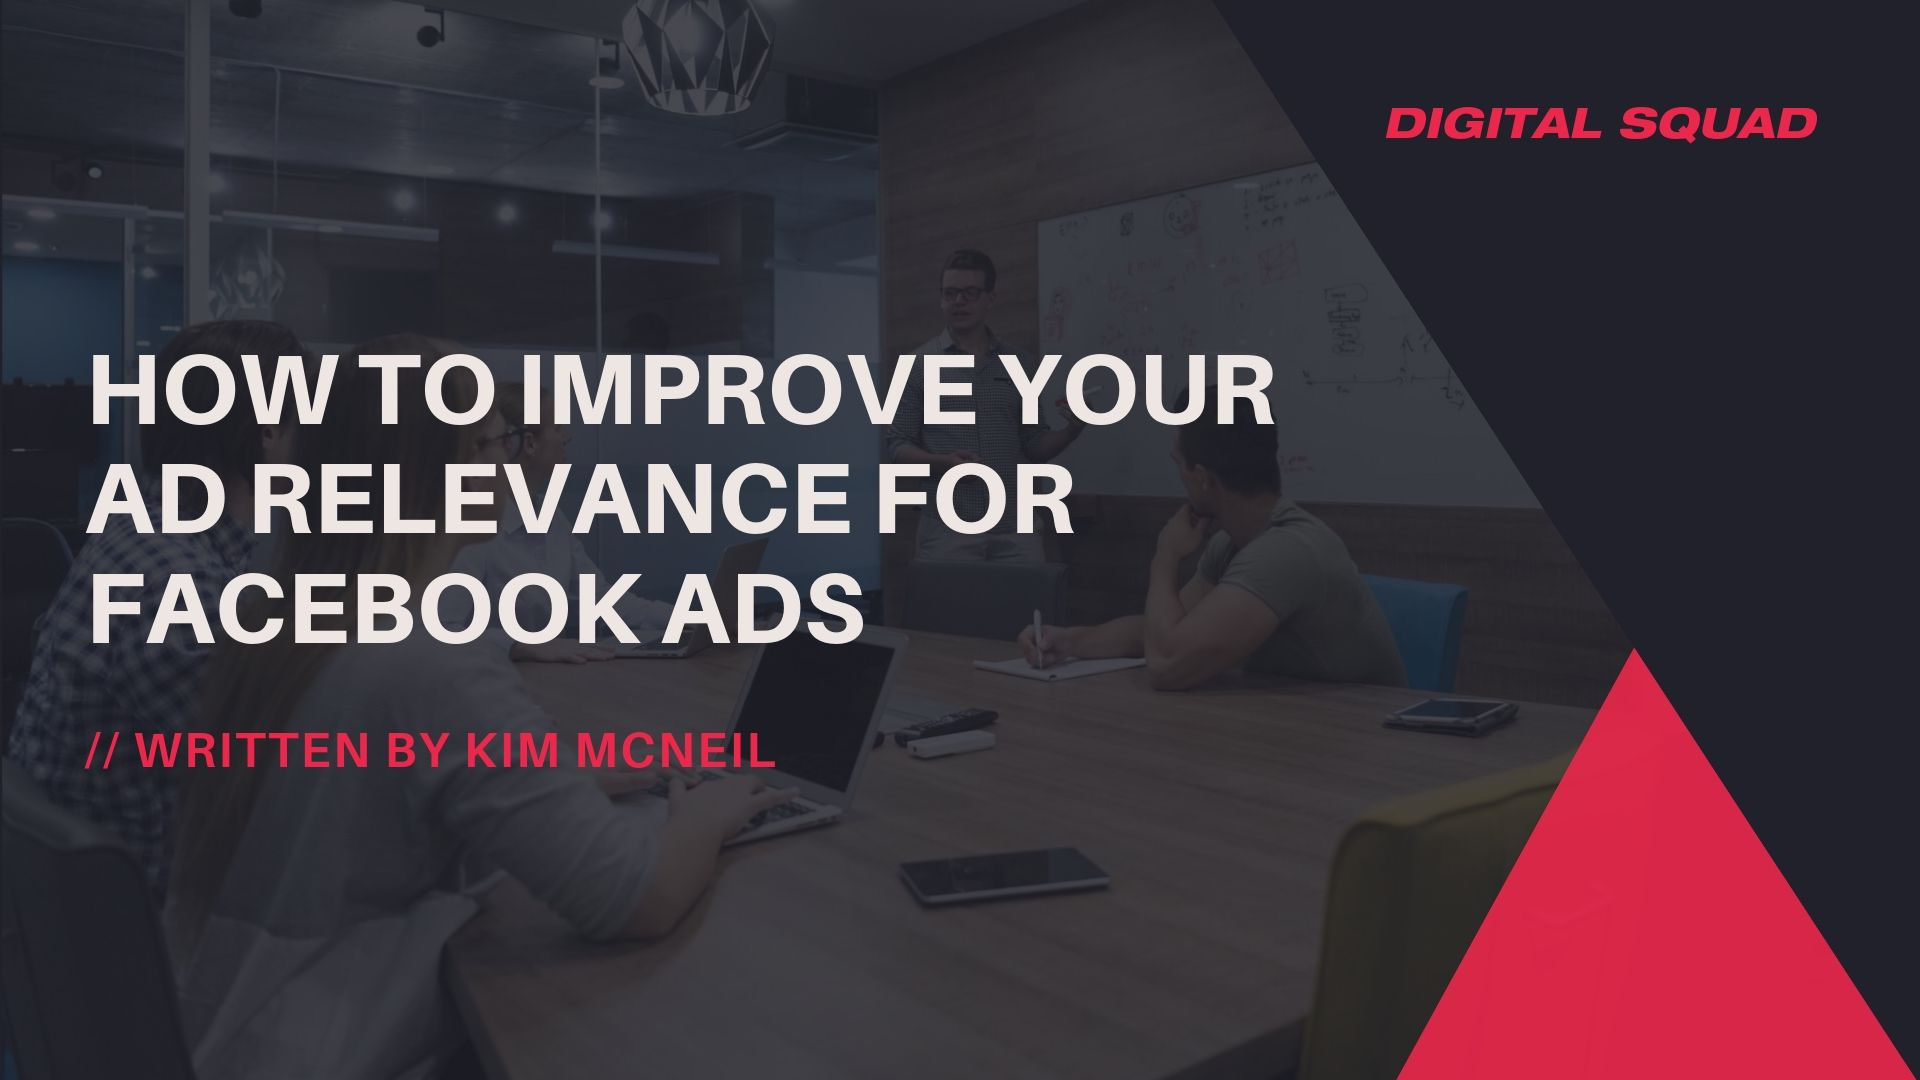 How to Improve Your Ad Relevance for Facebook Ads